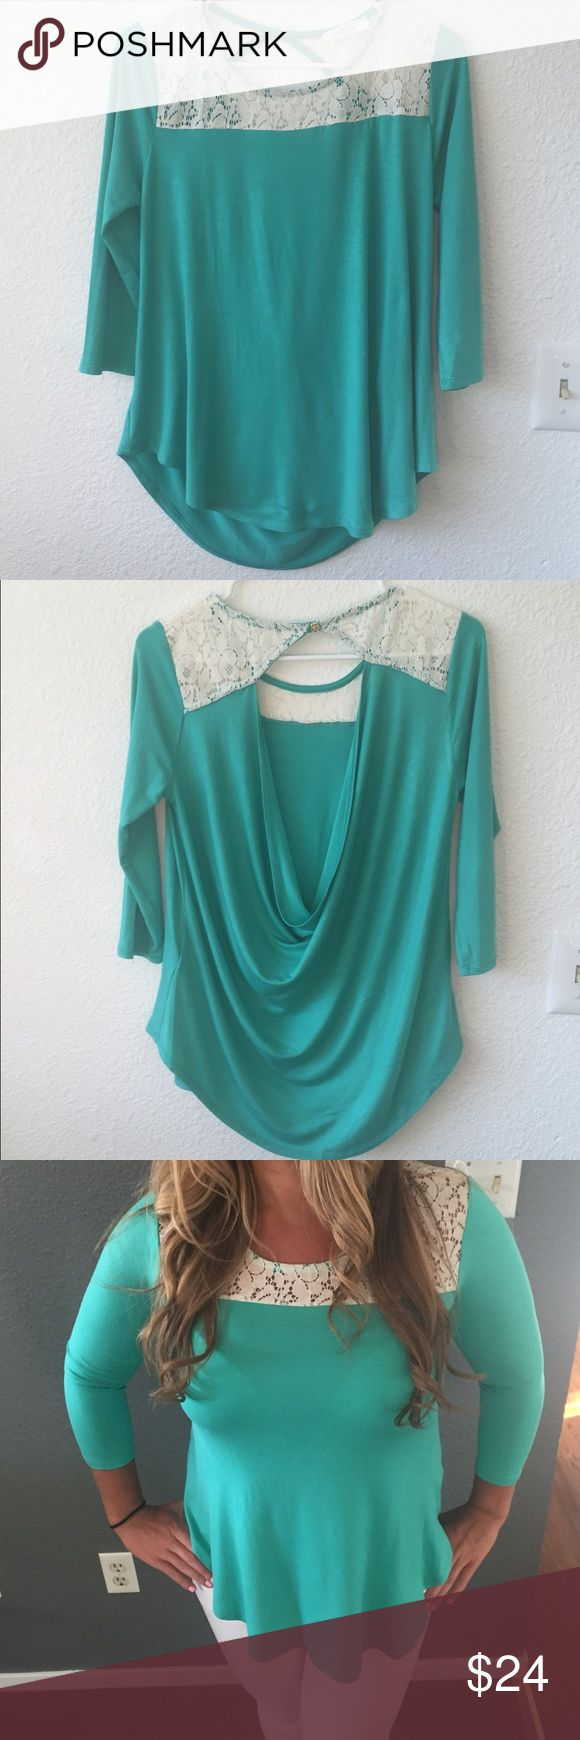 On hold*****Aqua lace hole back blouse Amazing blouse!! Could be worn as business casual or night out! Tops Blouses